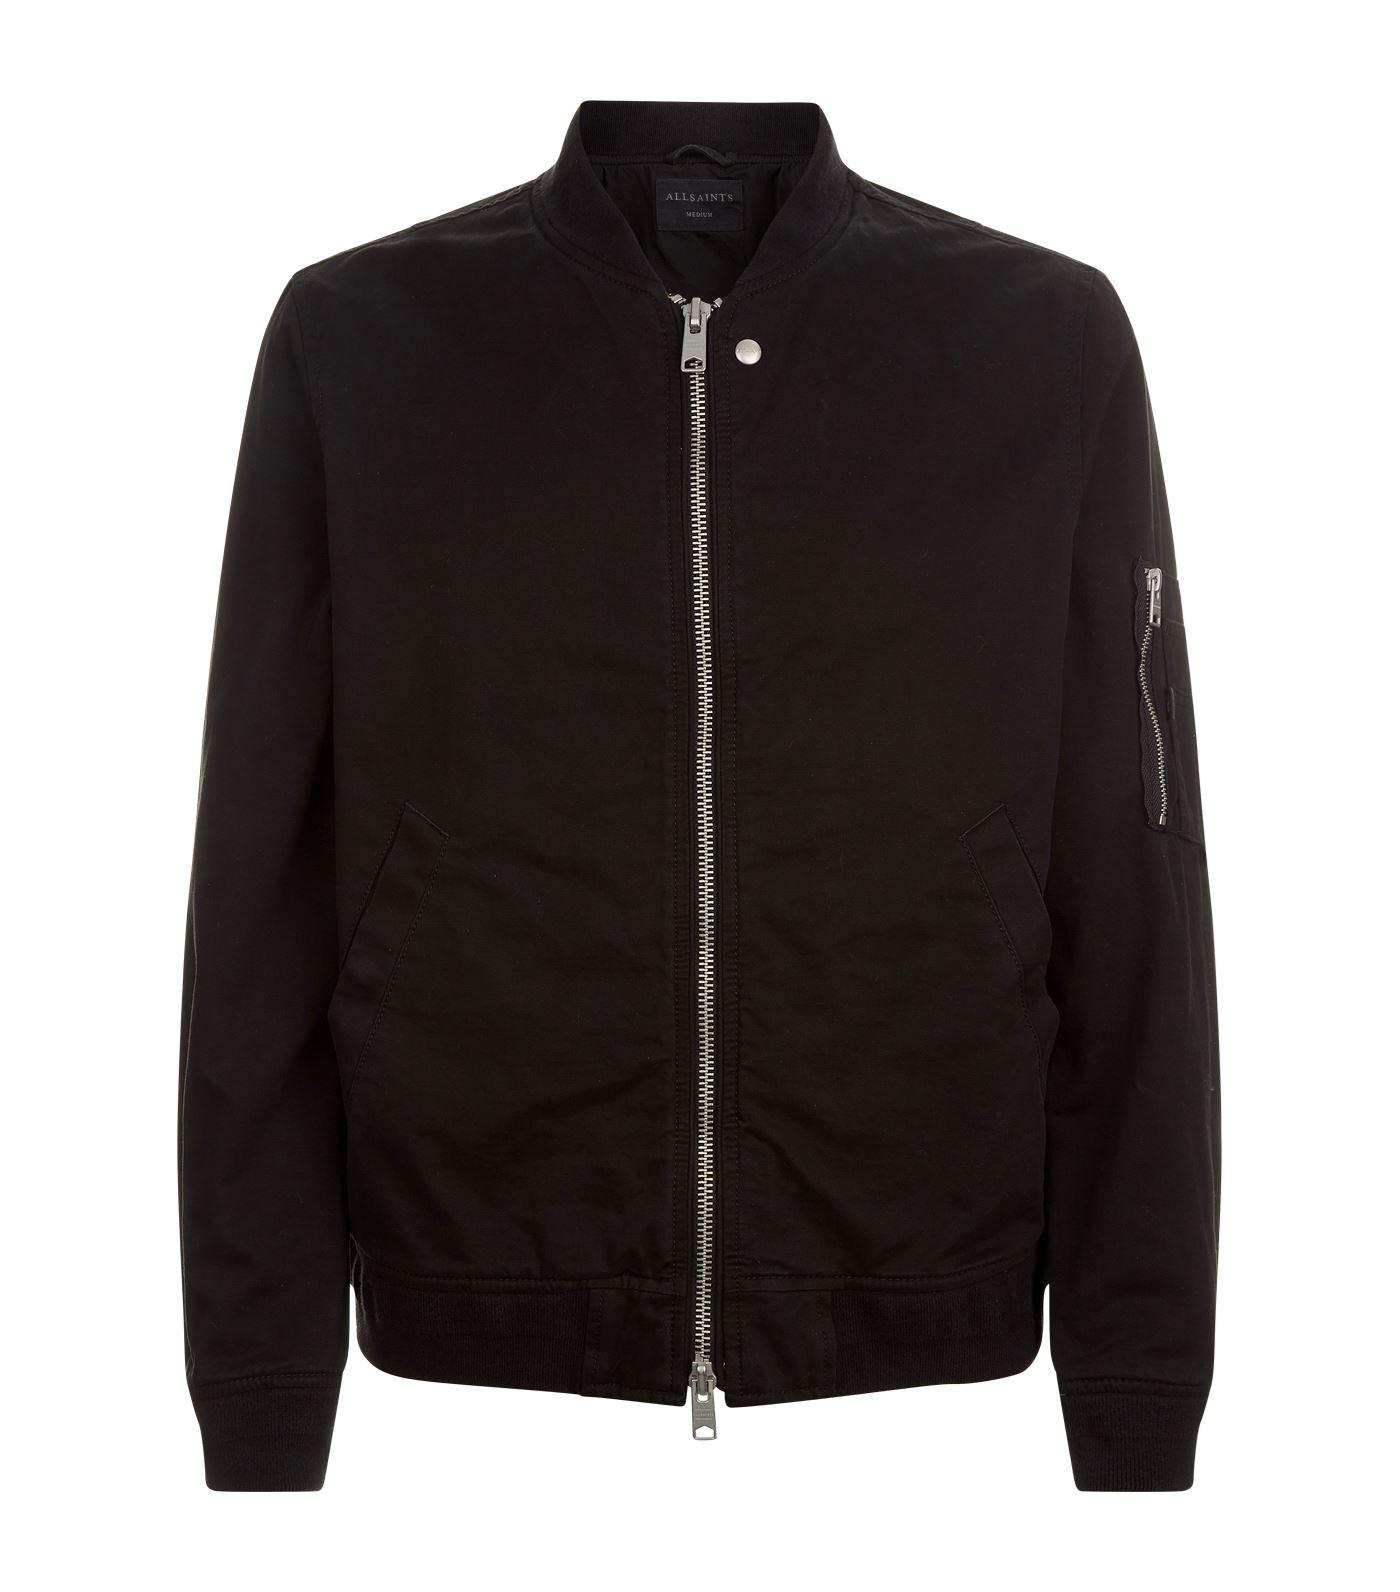 AllSaints Satta Bomber Jacket in Black for Men - Lyst